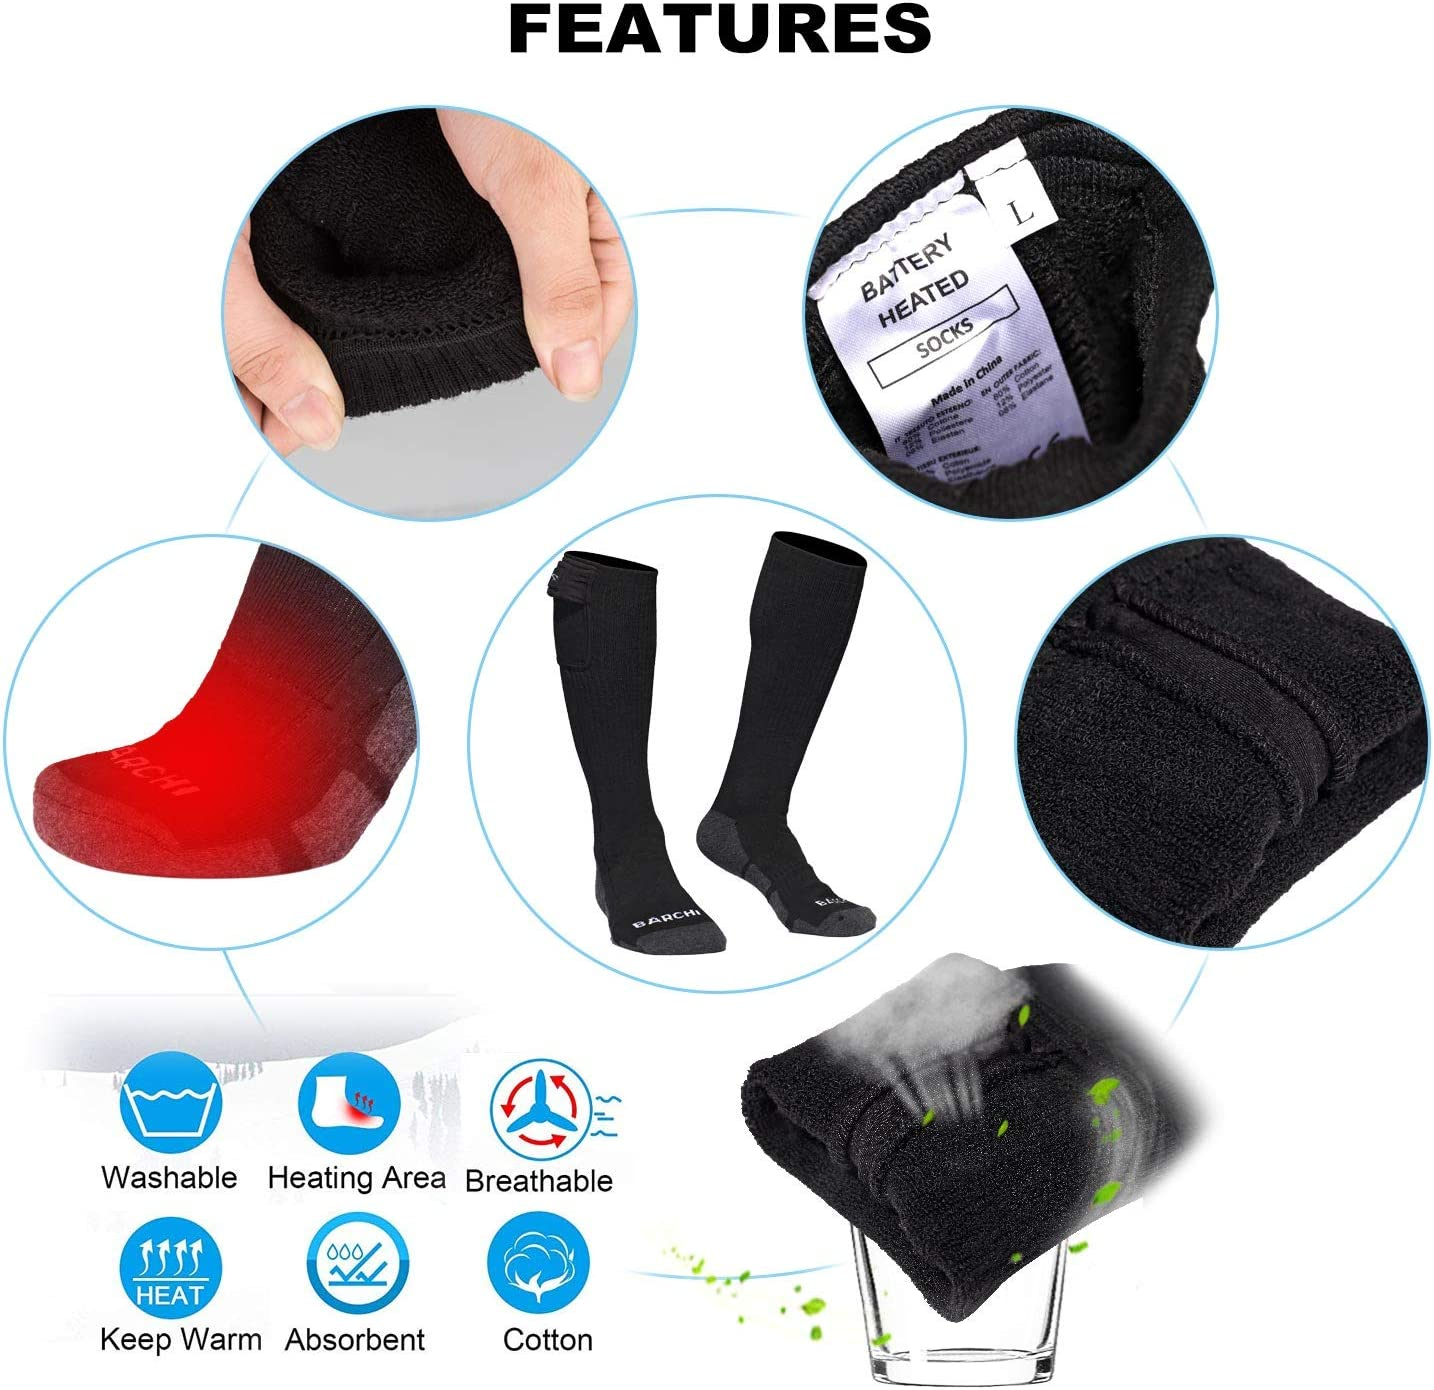 BARCHI HEAT 12V Heated Socks,Men Women Electric Rechargeable Battery Motorcycle Socks,Winter Skiing Cotton Coolmax Socks,Foot Feet Warmers for Riders Bikers,Support Powered by Moto Battery